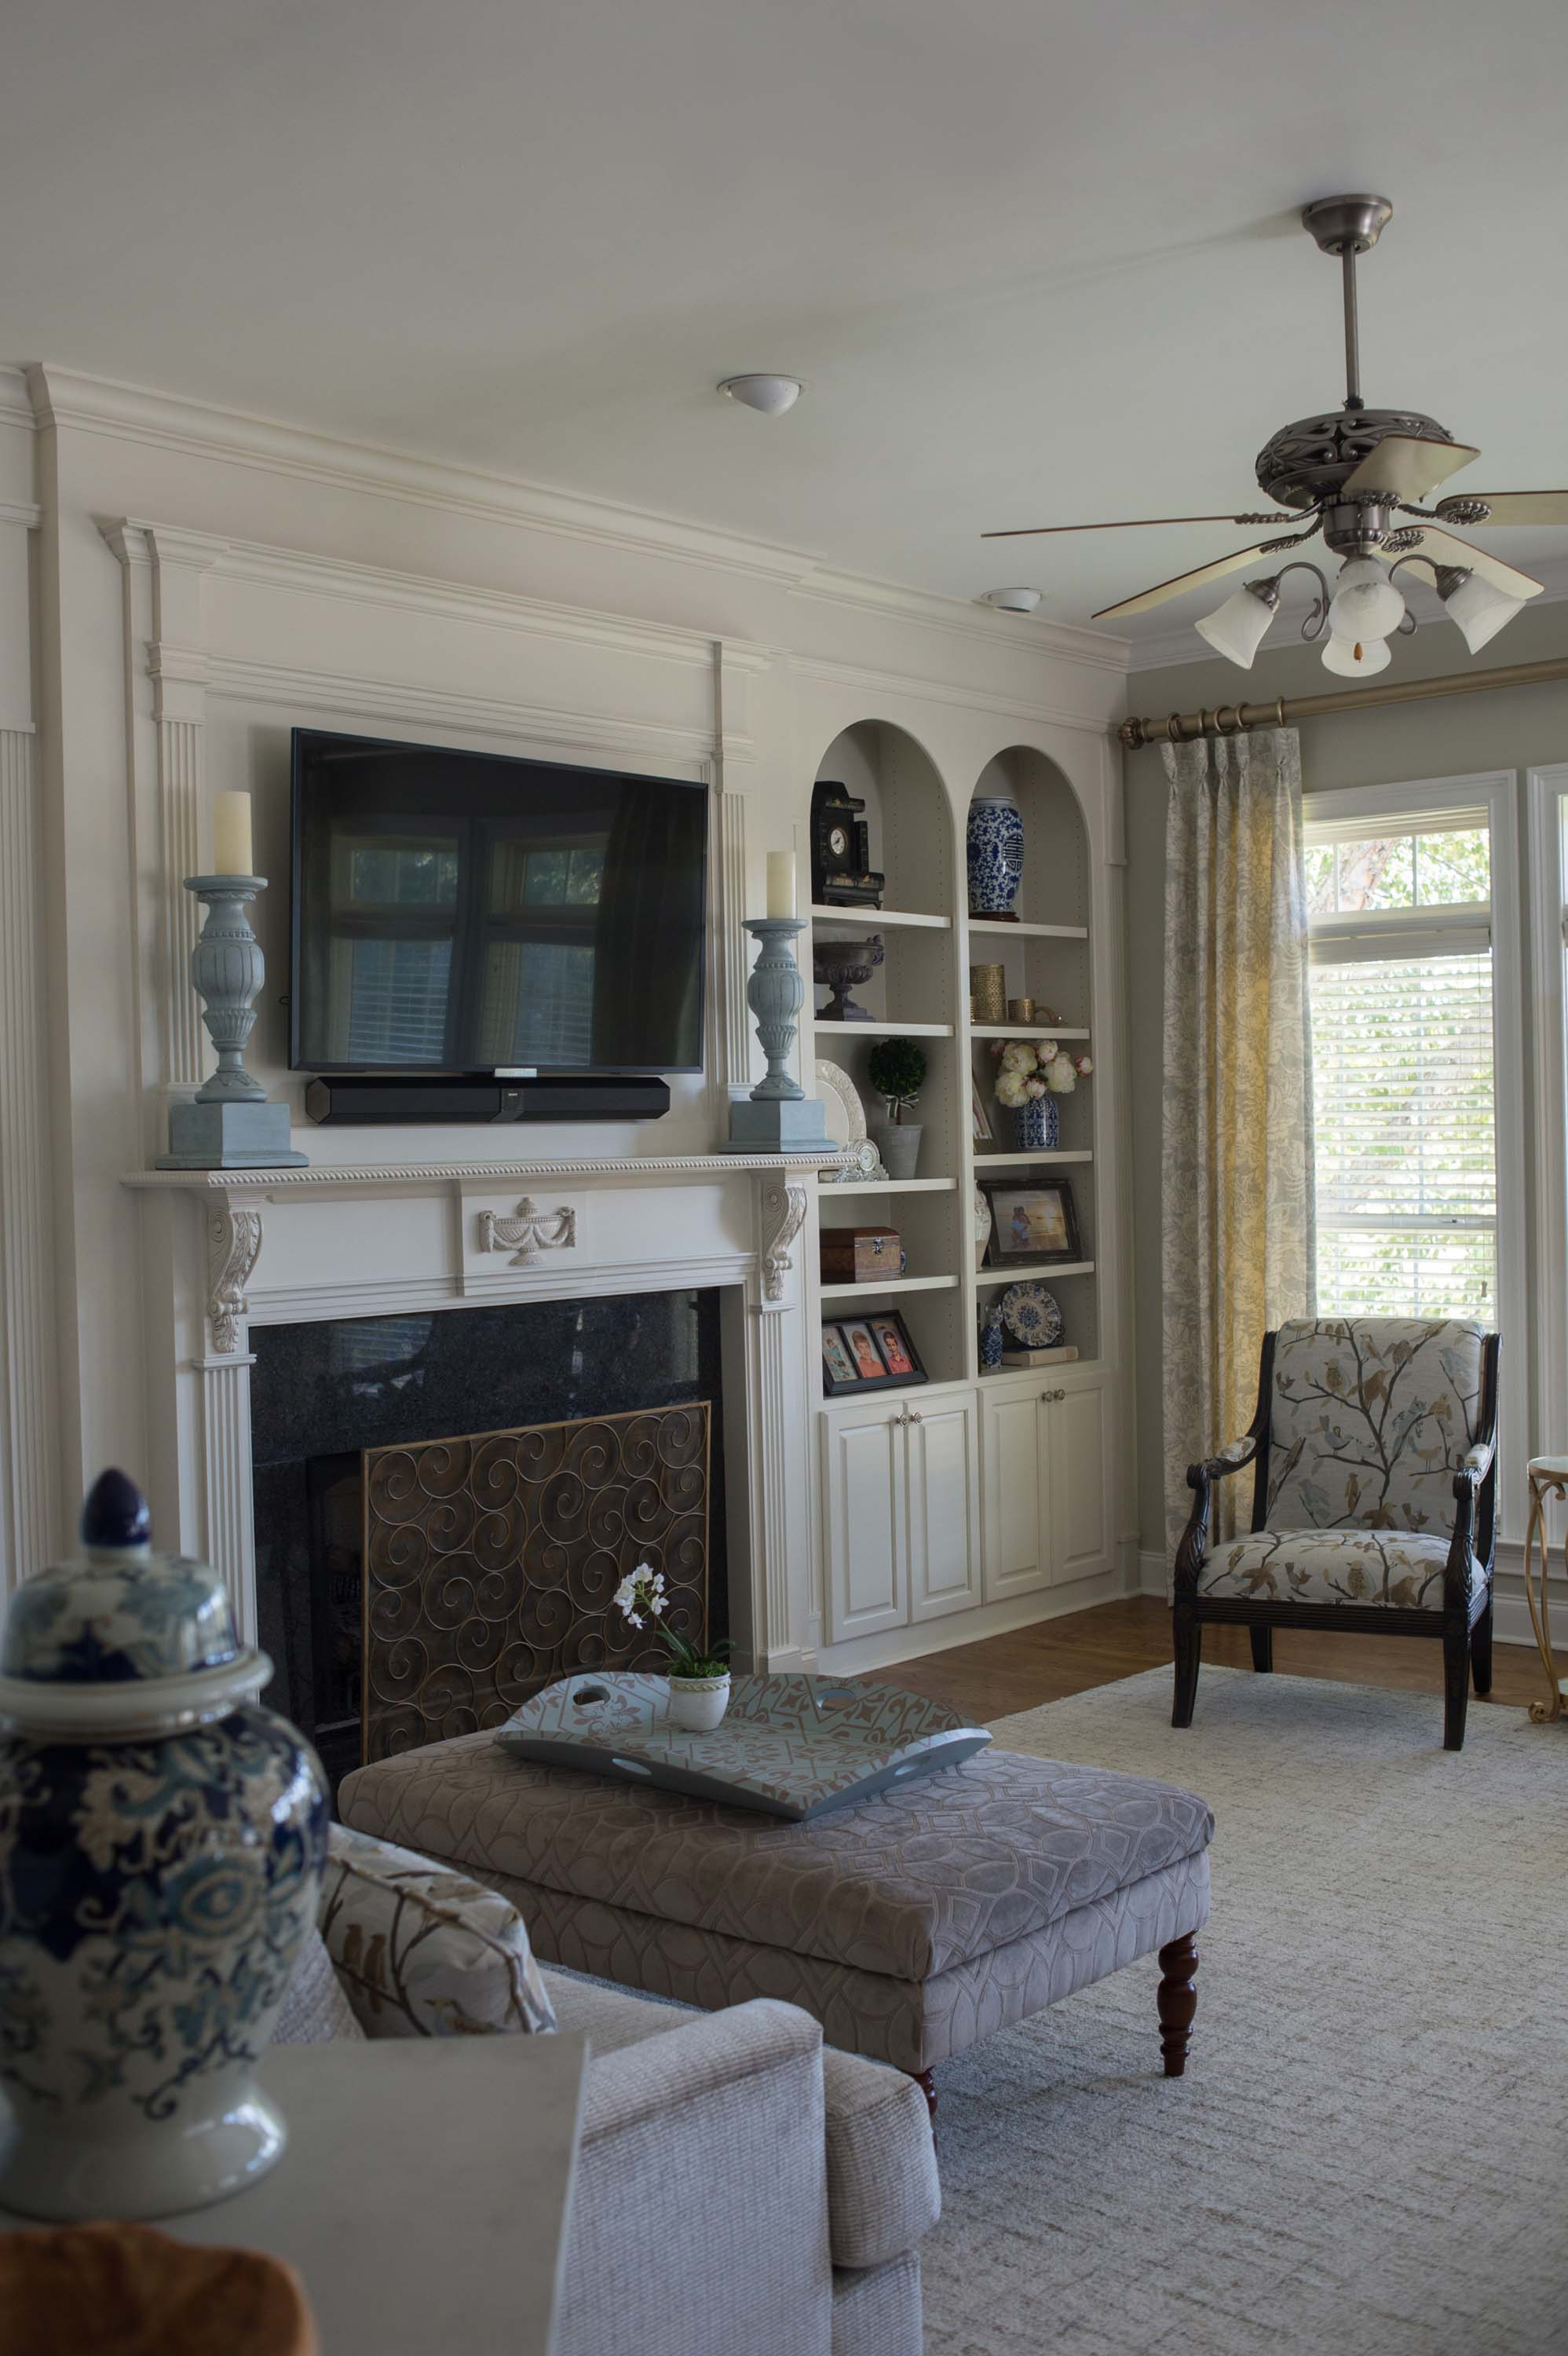 Living room with fireplace, ceiling fan and built-in cabinet